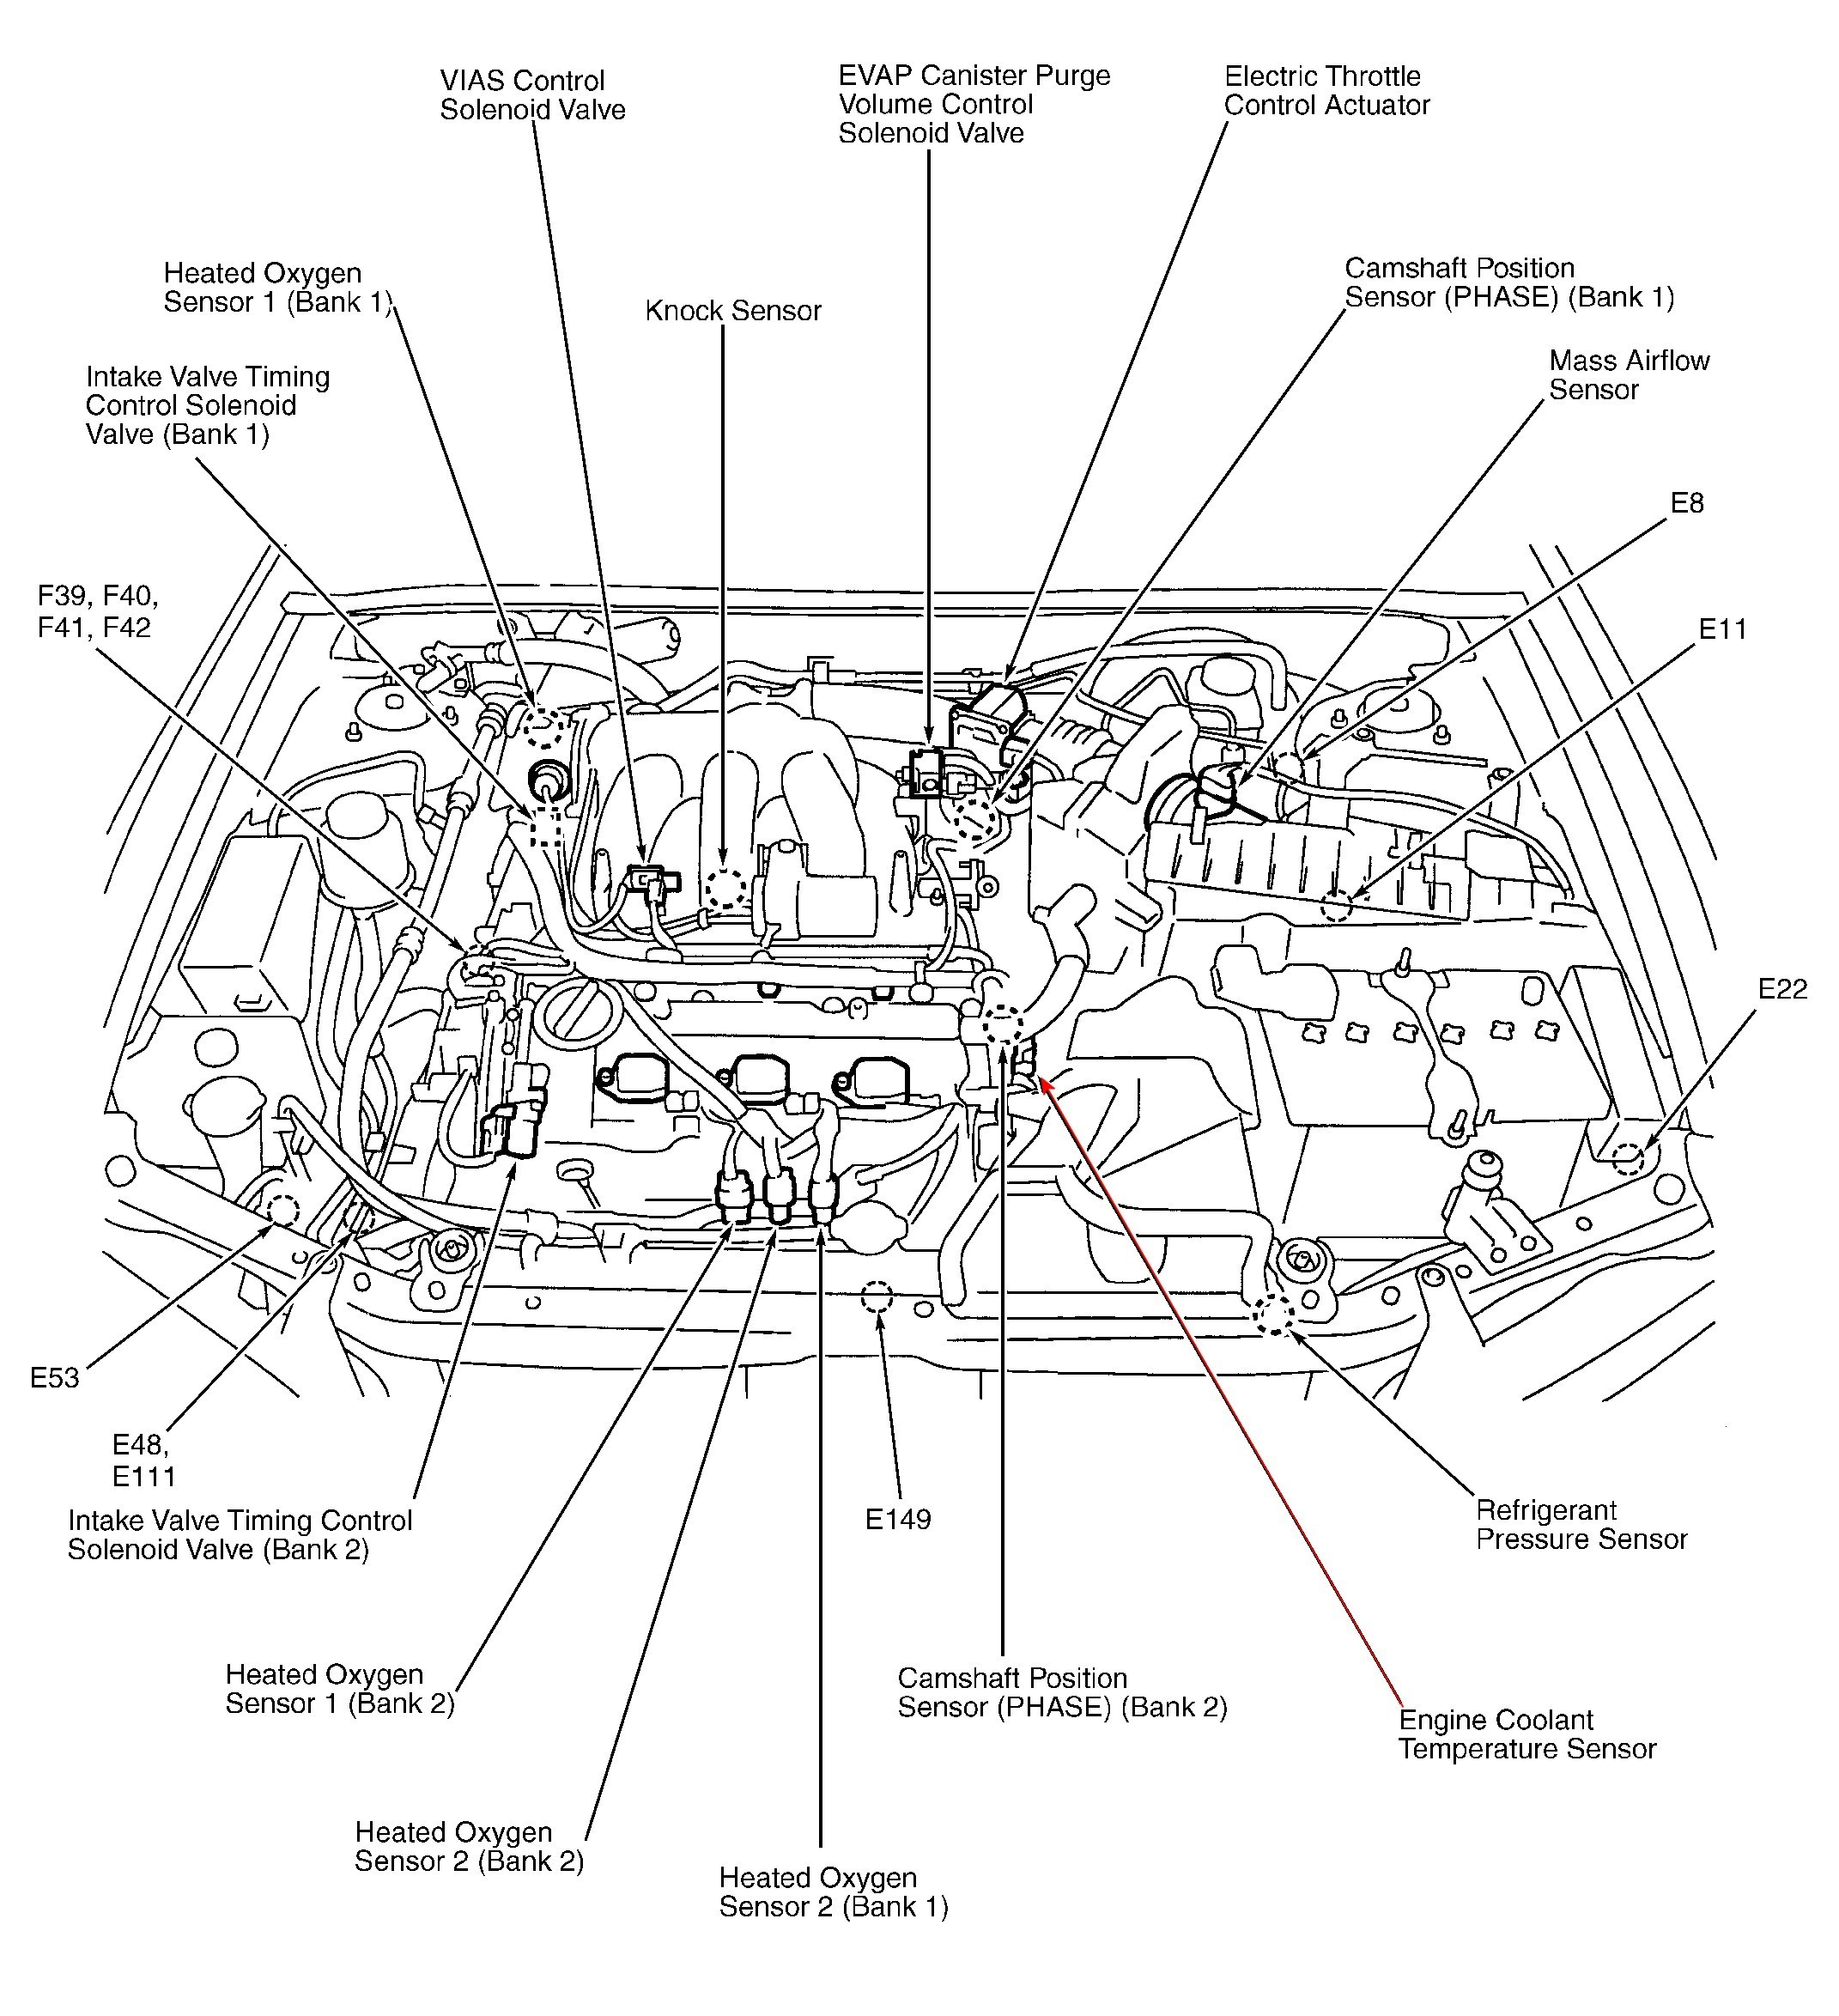 wiring diagram for 1995 dodge ram 1500 under the car hood diagram my wiring diagram fuse box diagram for 1995 dodge ram 1500 #1